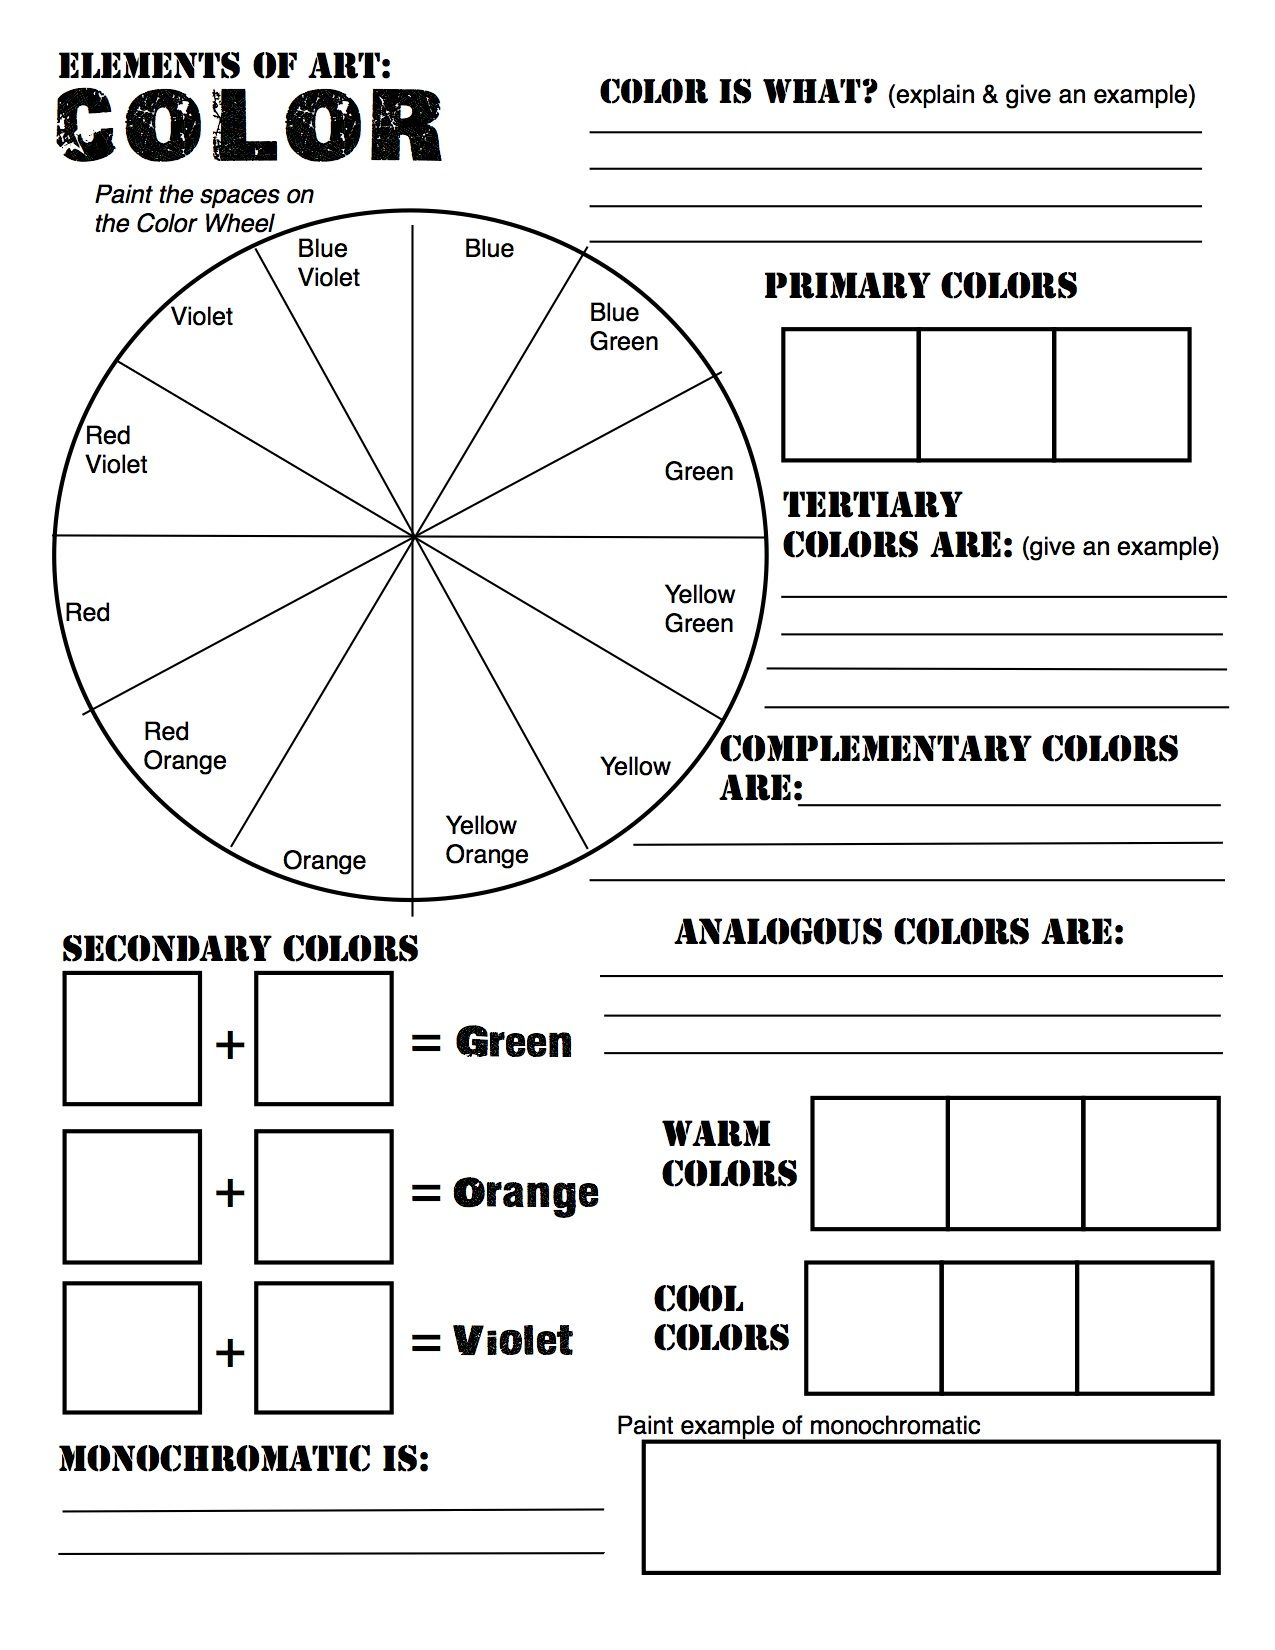 Color Wheel Worksheets, Colour Theory Lessons Color Theory Colour Wheel Lesson Colour Wheel Art Color, Color Wheel Worksheets